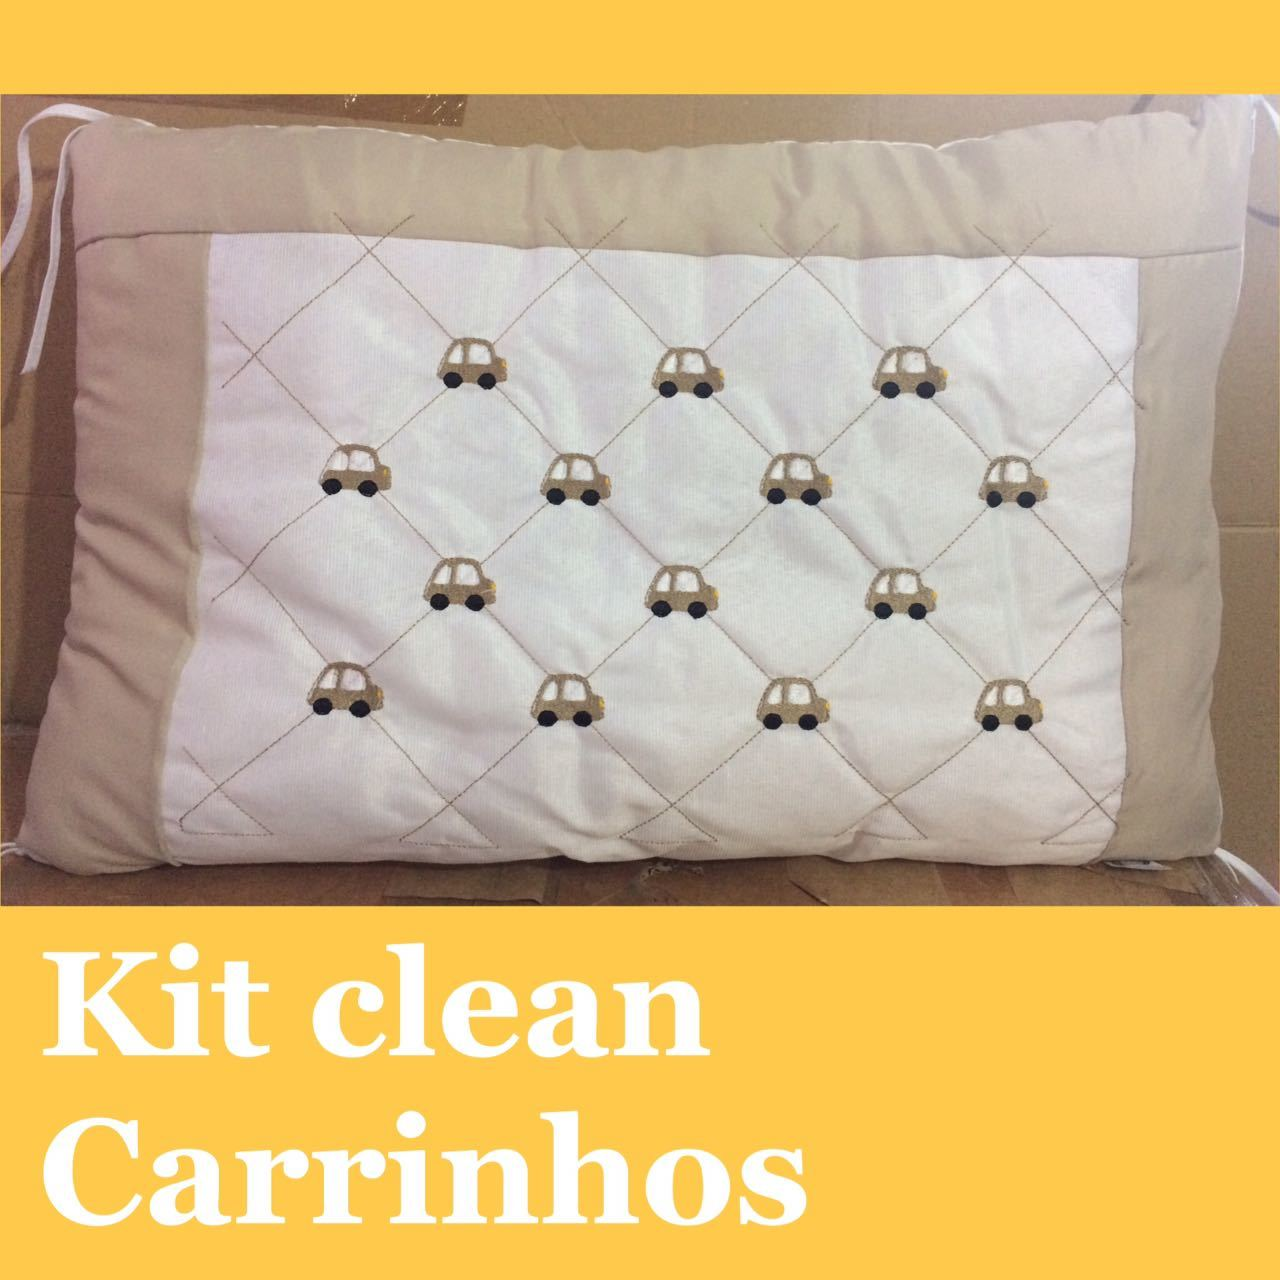 Kit Clean Carrinhos